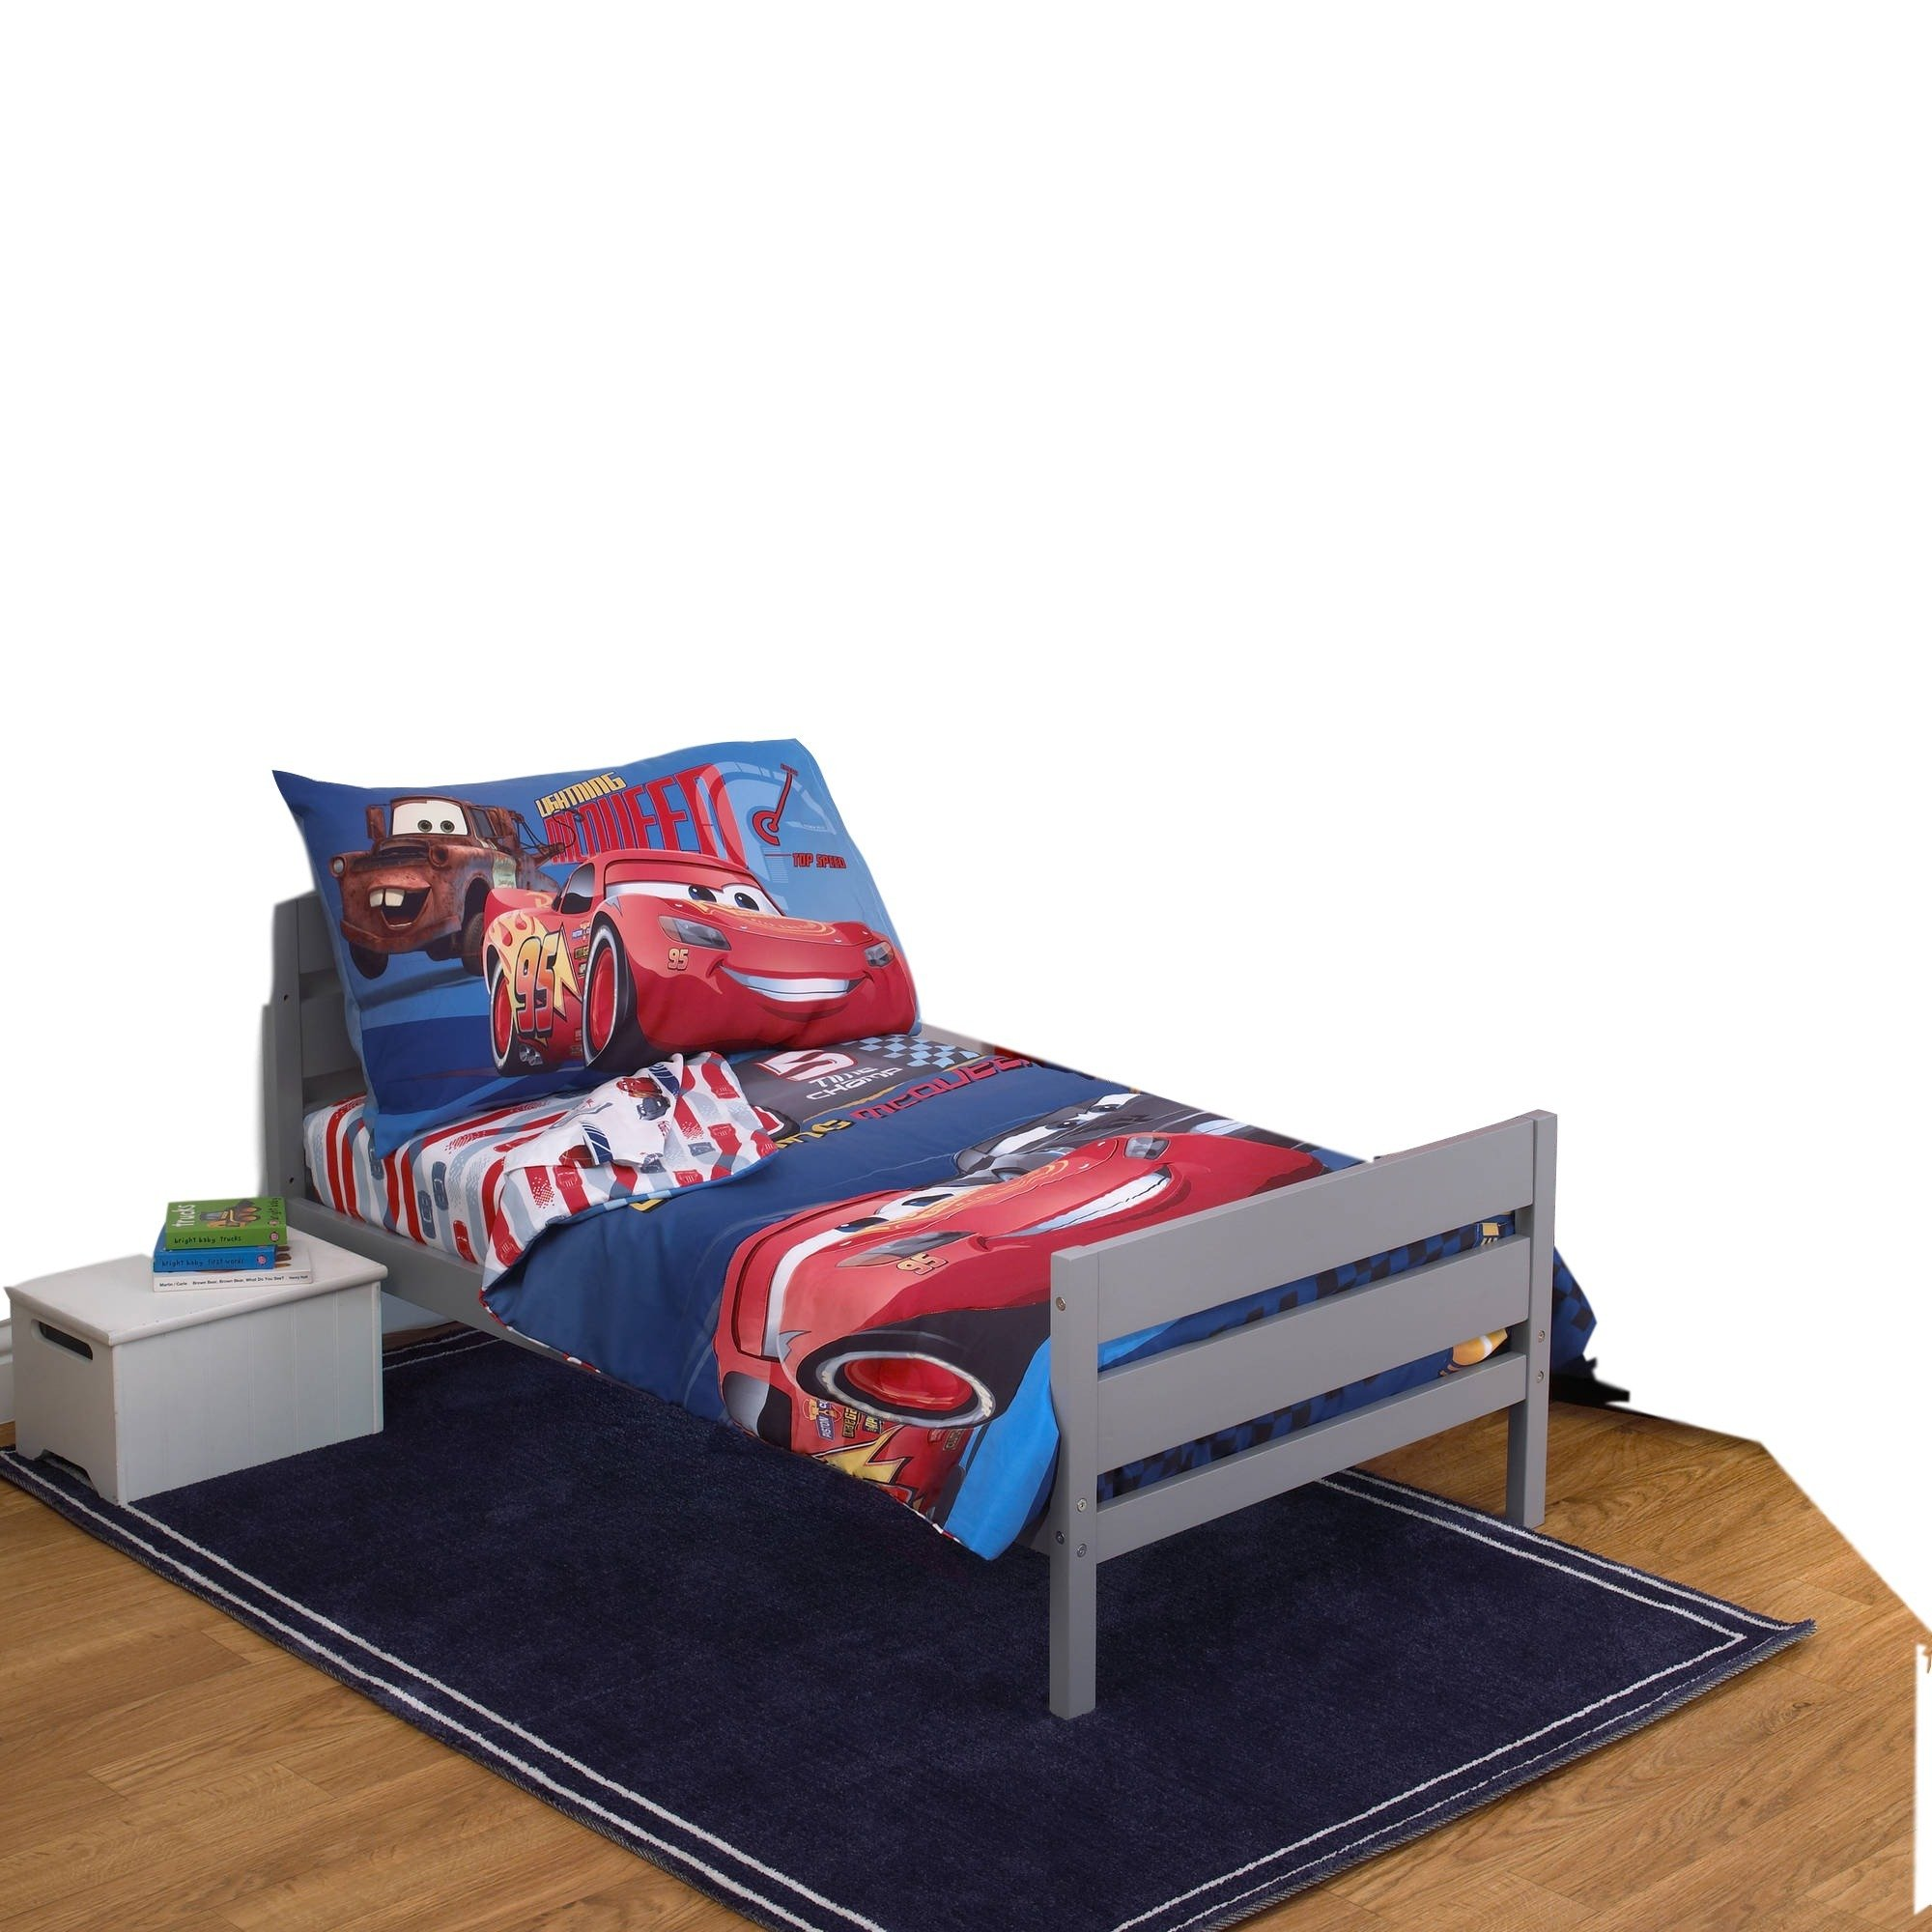 Disney Cars 3 Fast Not Last 4 Piece Toddler Bed Set McQueen Jackson Storm 20 by Disney